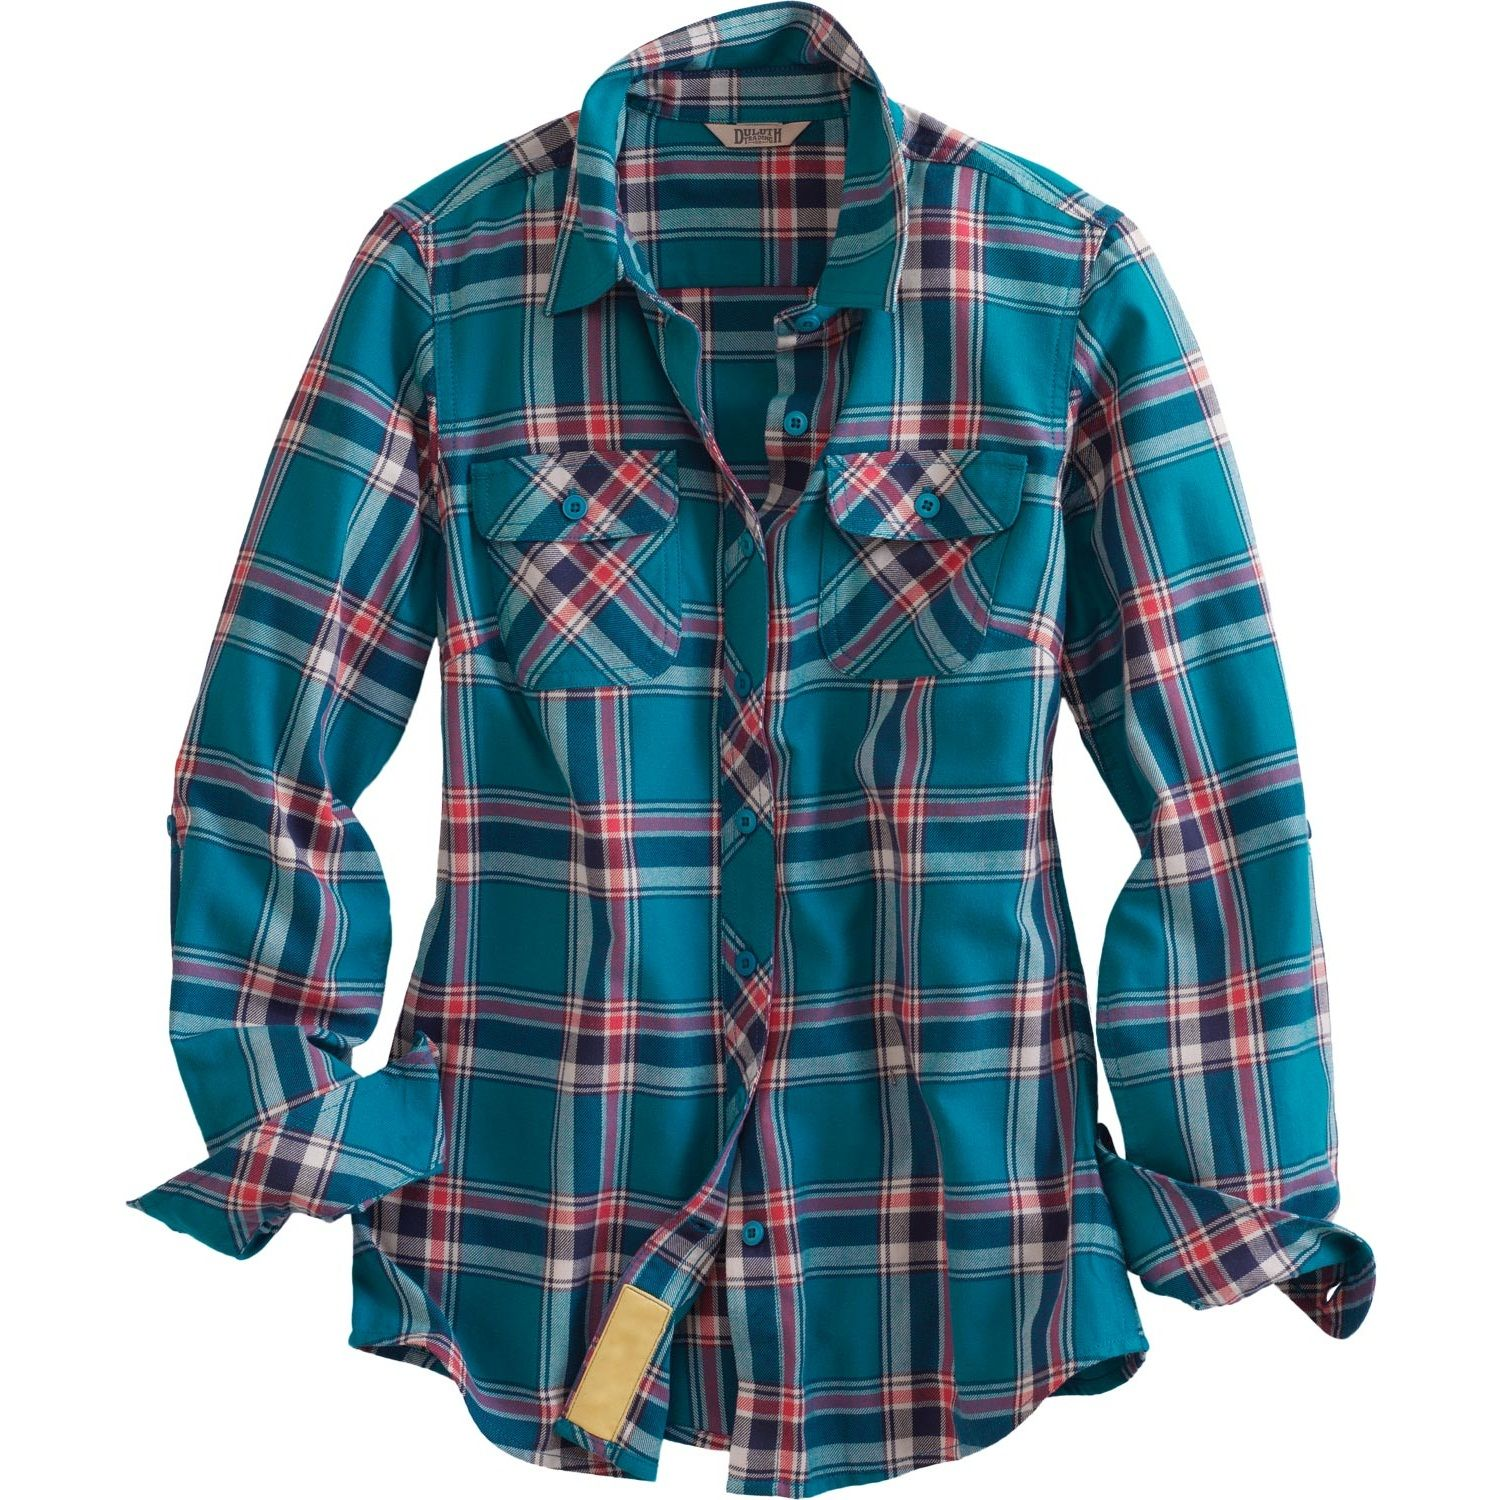 WOMEN'S CROSSCUT PERFORMANCE FLANNEL SHIRT - DEEP TURQUOISE PLAID ...